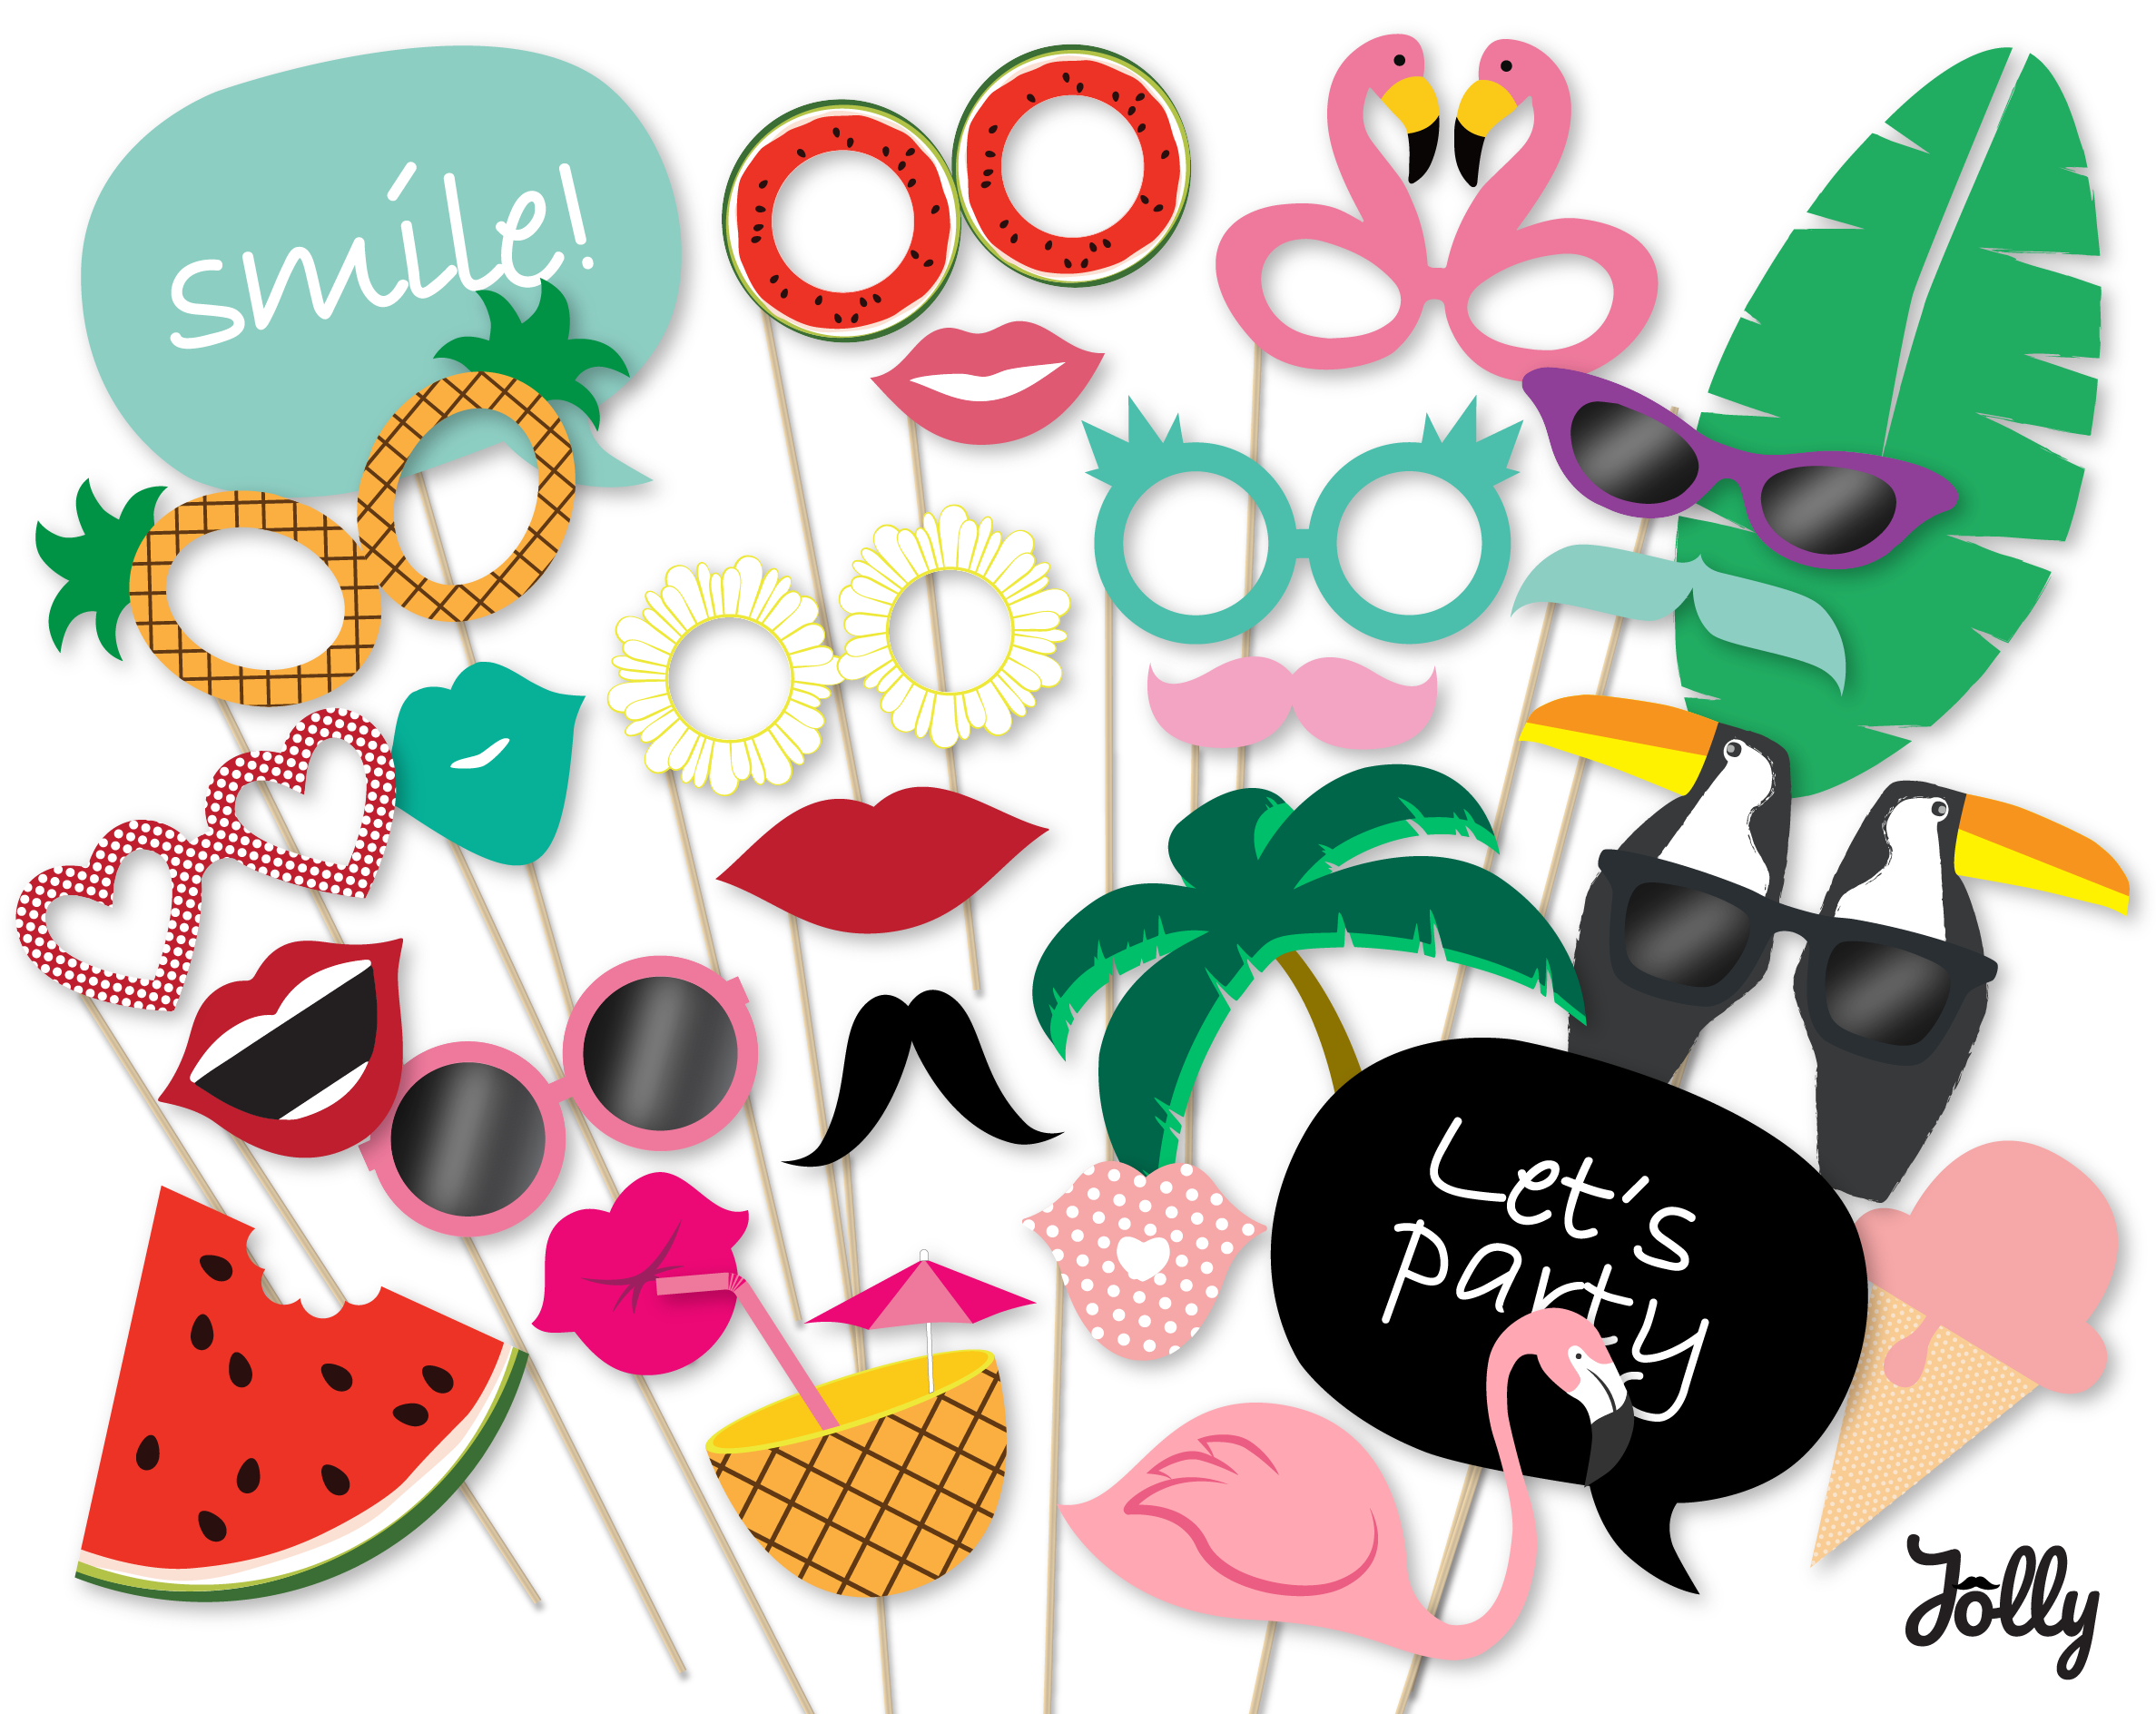 Hawaiian Party Photo Booth Props Summer Party Printables Instant - Hawaiian Photo Booth Props Printable Free